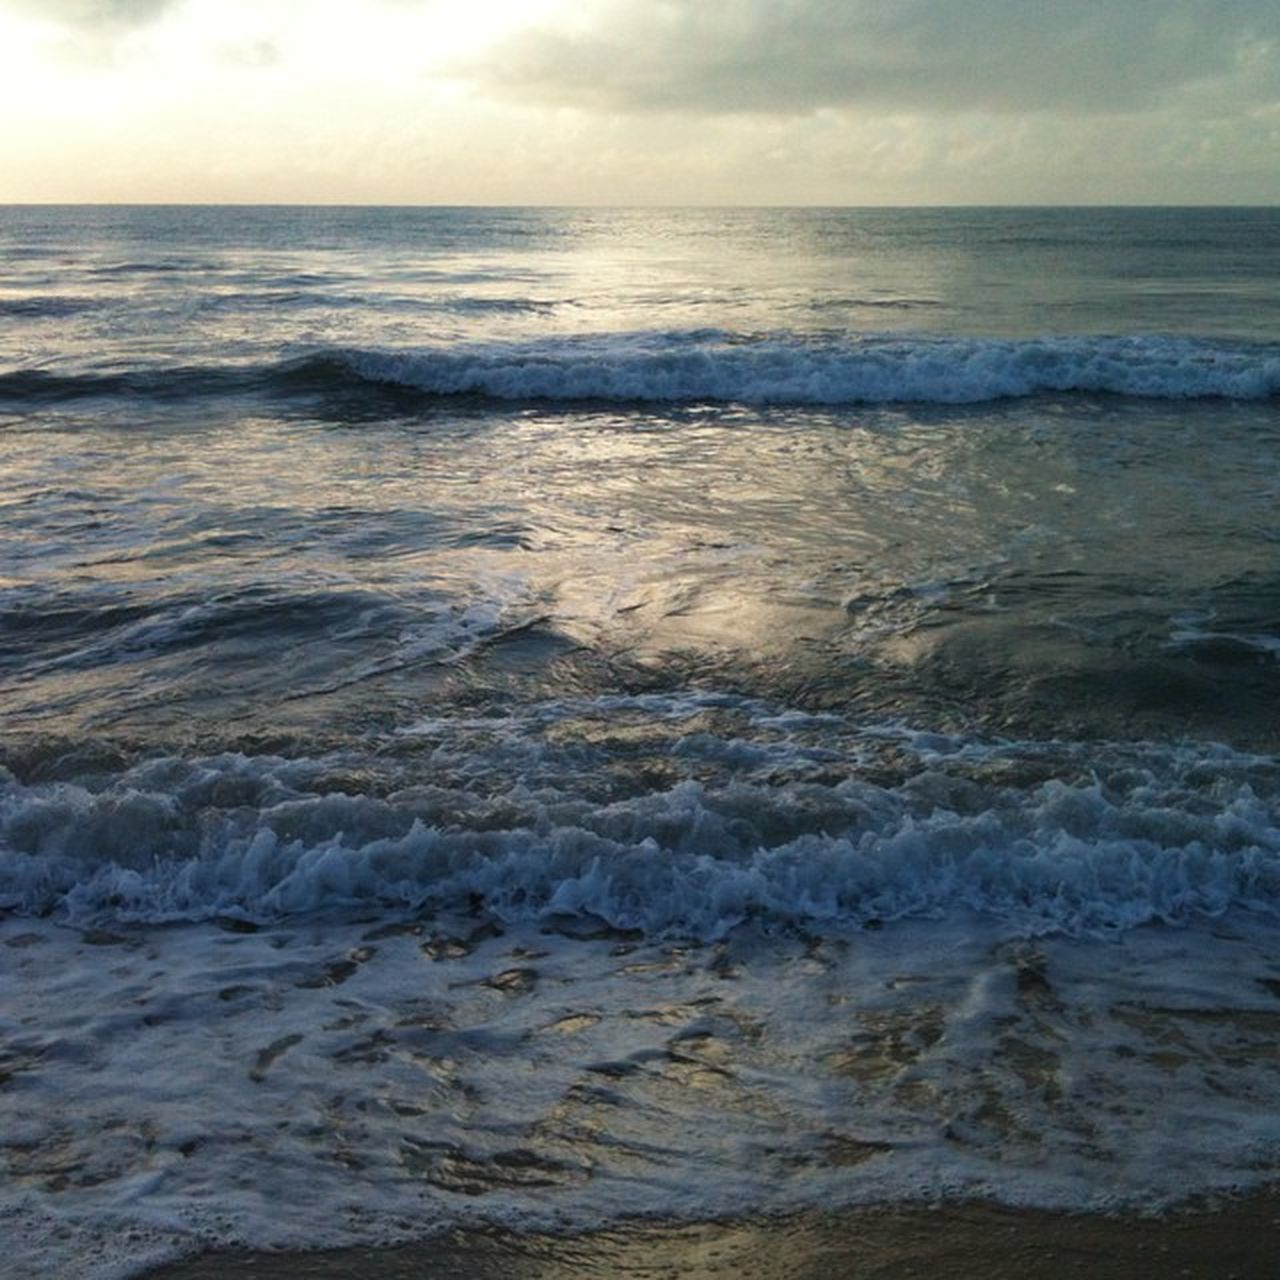 sea, water, nature, wave, beauty in nature, beach, scenics, horizon over water, tranquility, no people, sky, tranquil scene, outdoors, rippled, tide, sunset, motion, day